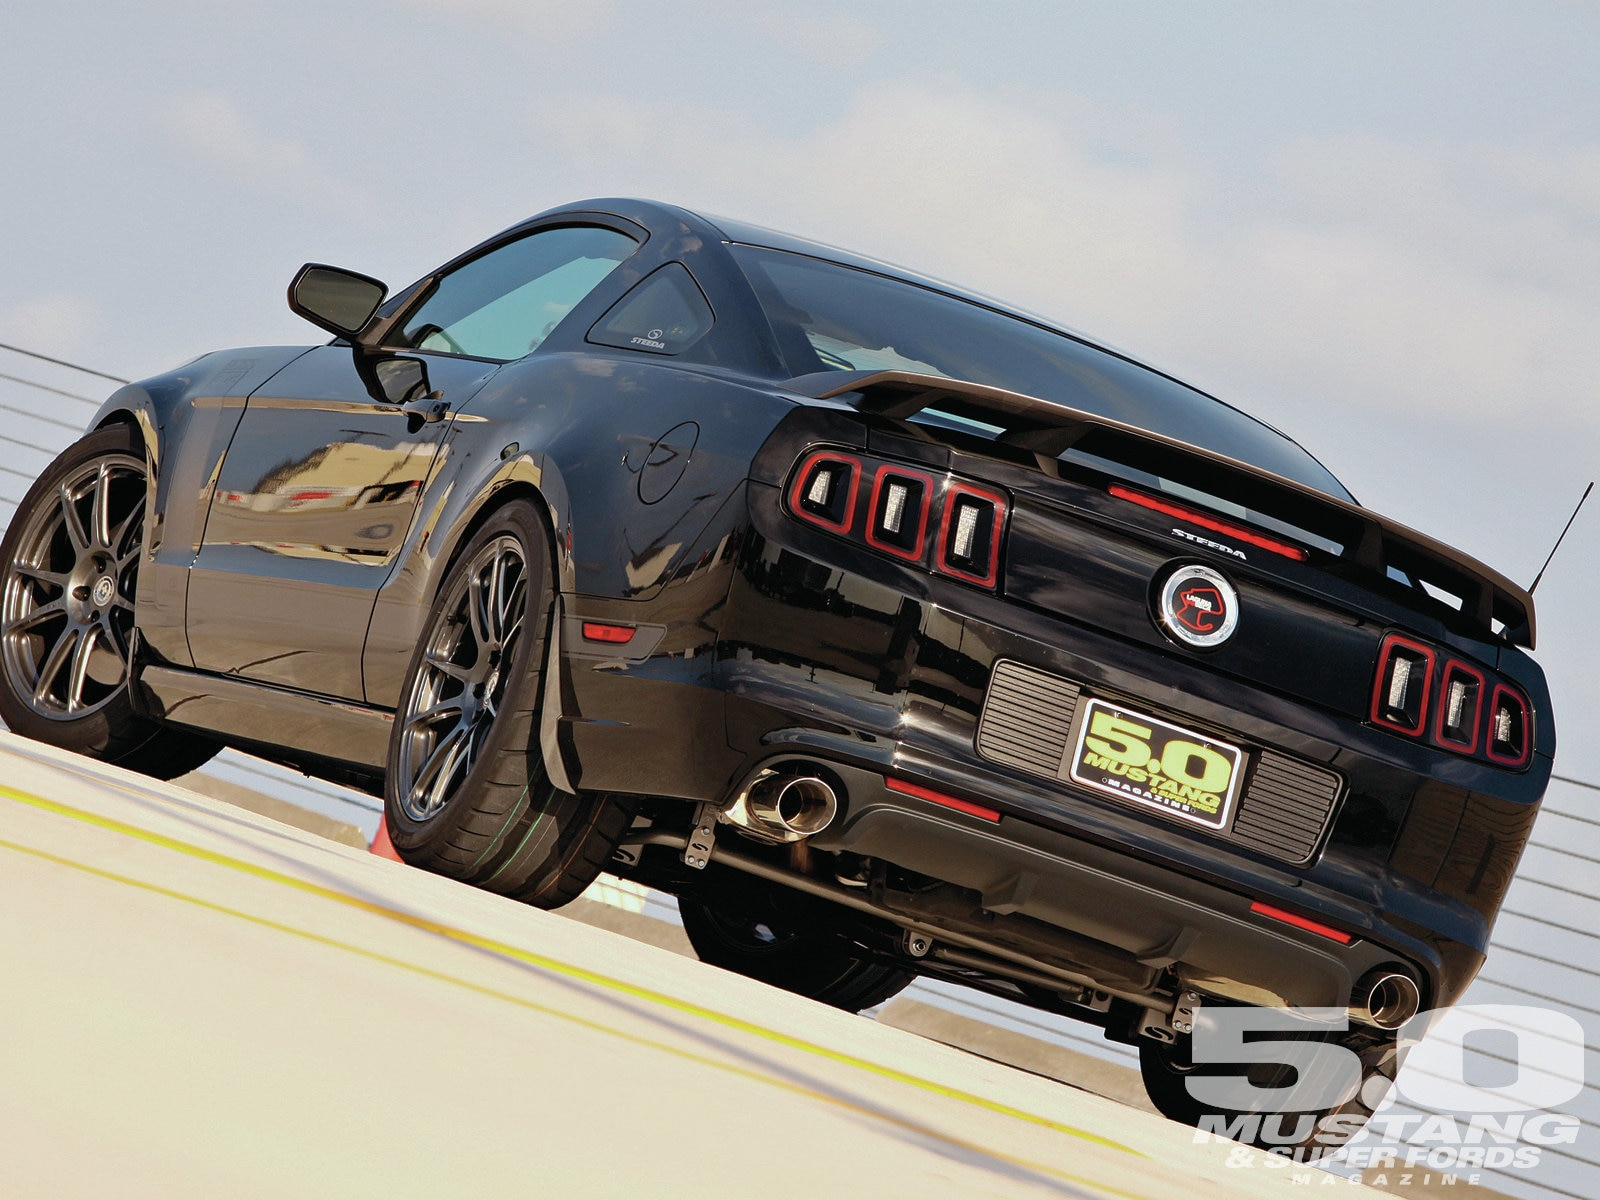 M5lp 1302 2013 Steeda Boss 302 LS Rear Three Quarters